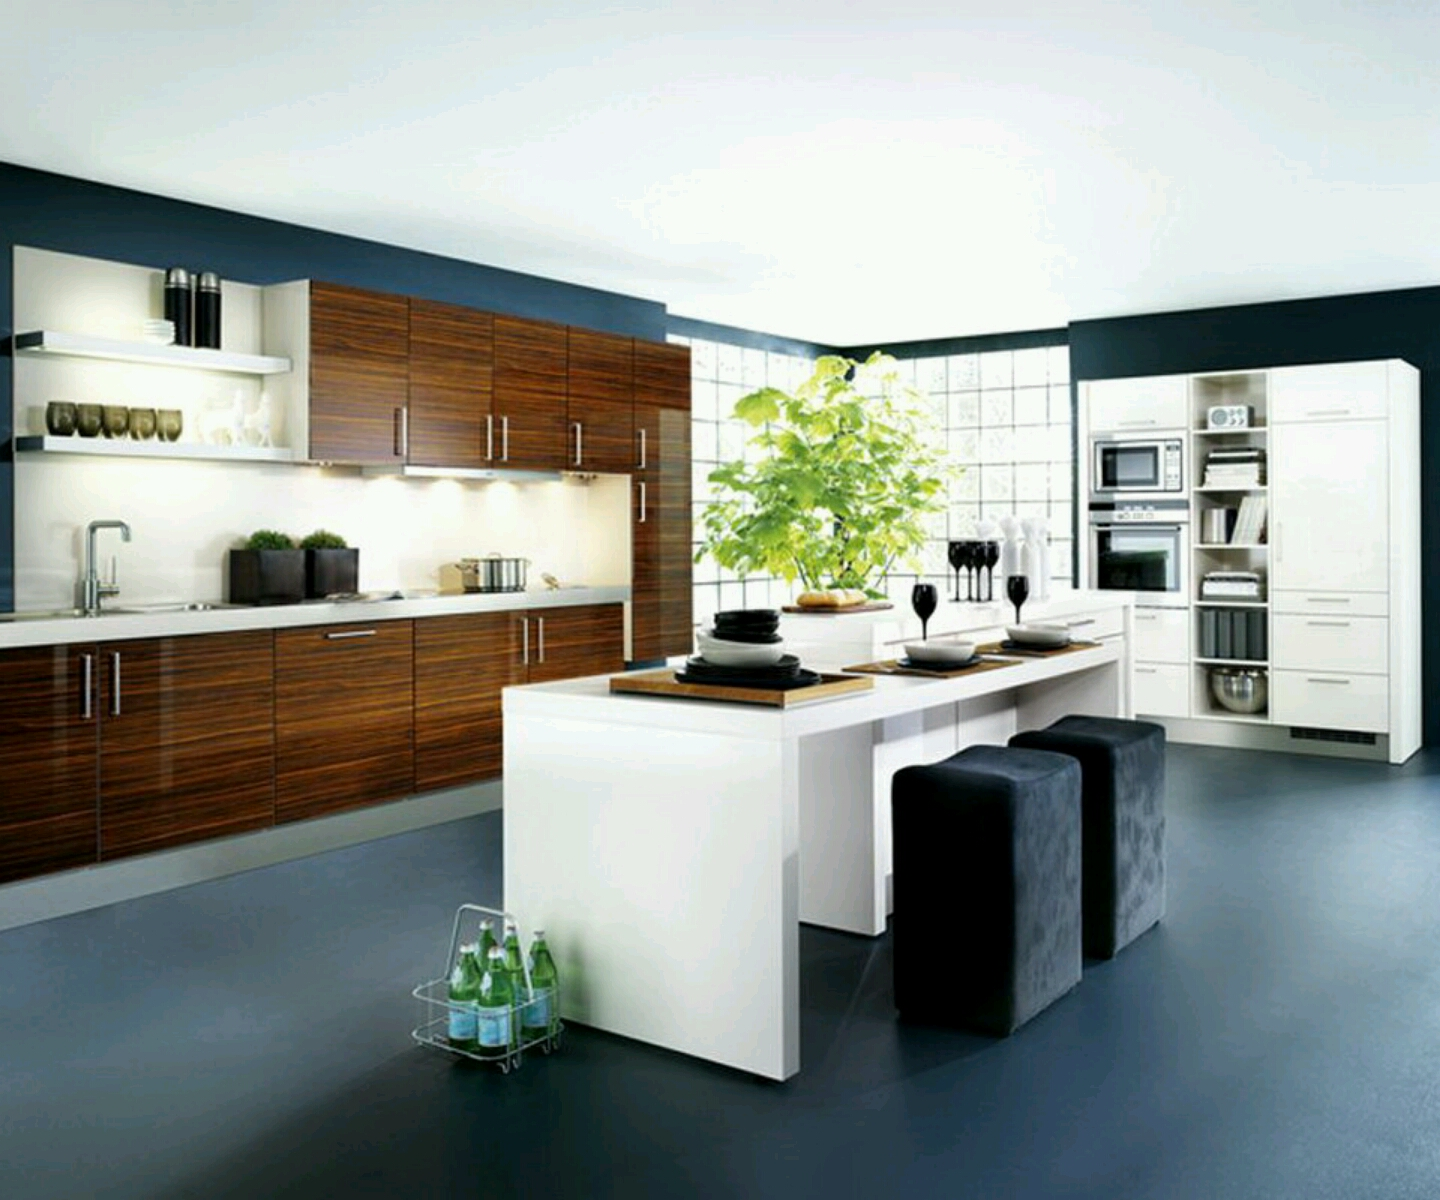 New home designs latest kitchen cabinets designs modern for Kitchen cupboard designs